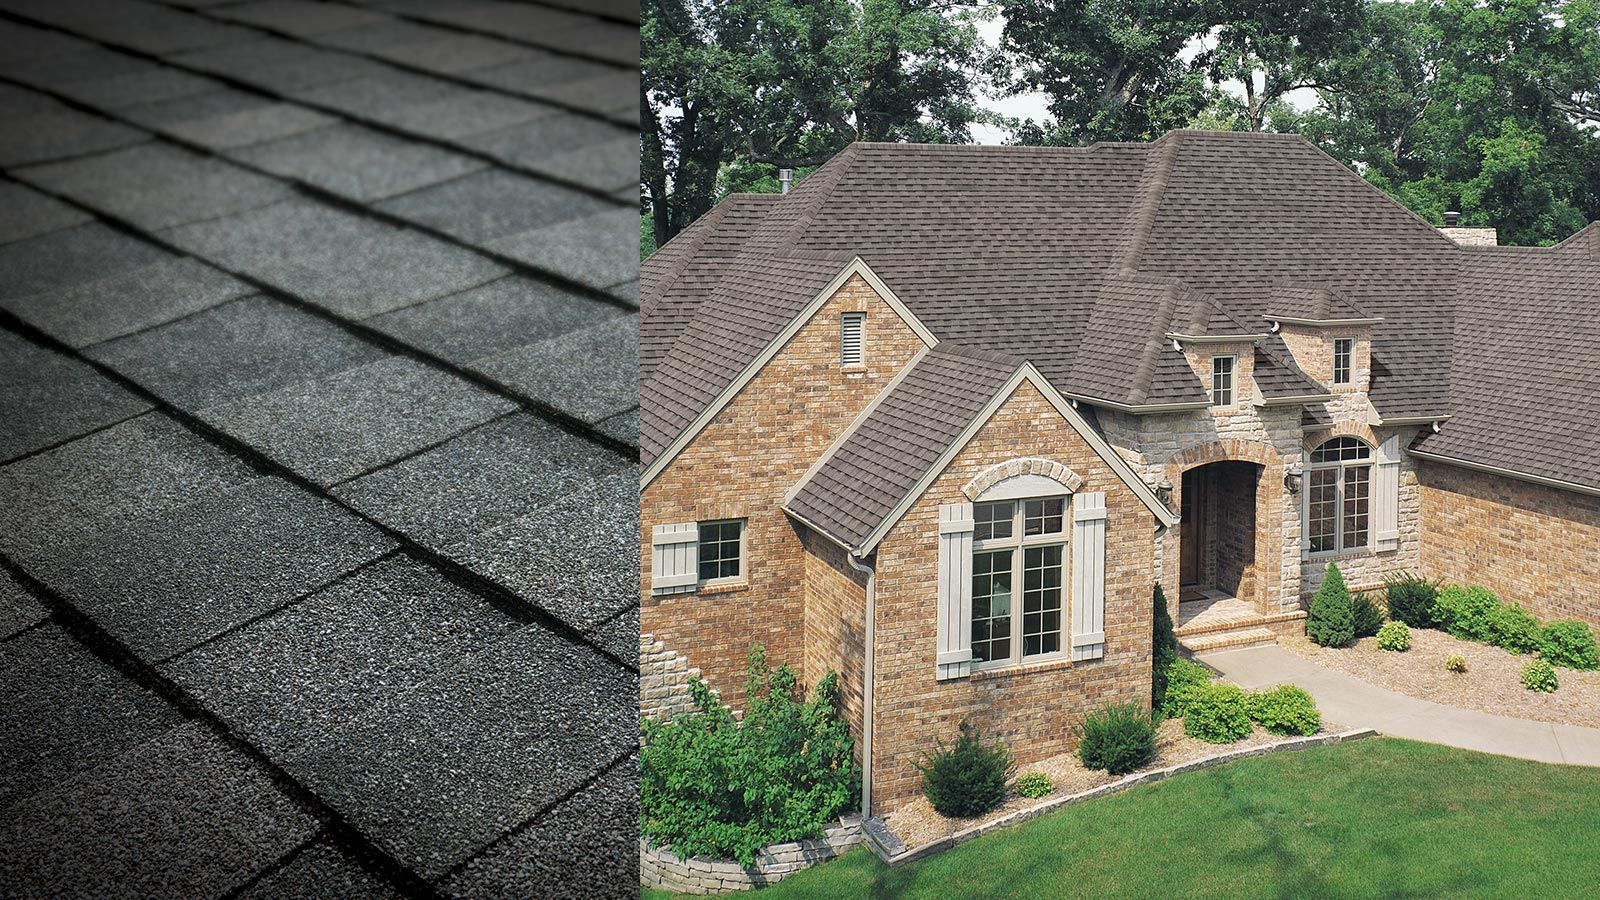 Heritage Heritage Premium Virginia Slate Free Inspections The People Of Arkansas Have Been Trusting Benson Restoration Roofing Roof Colors Shingle Colors